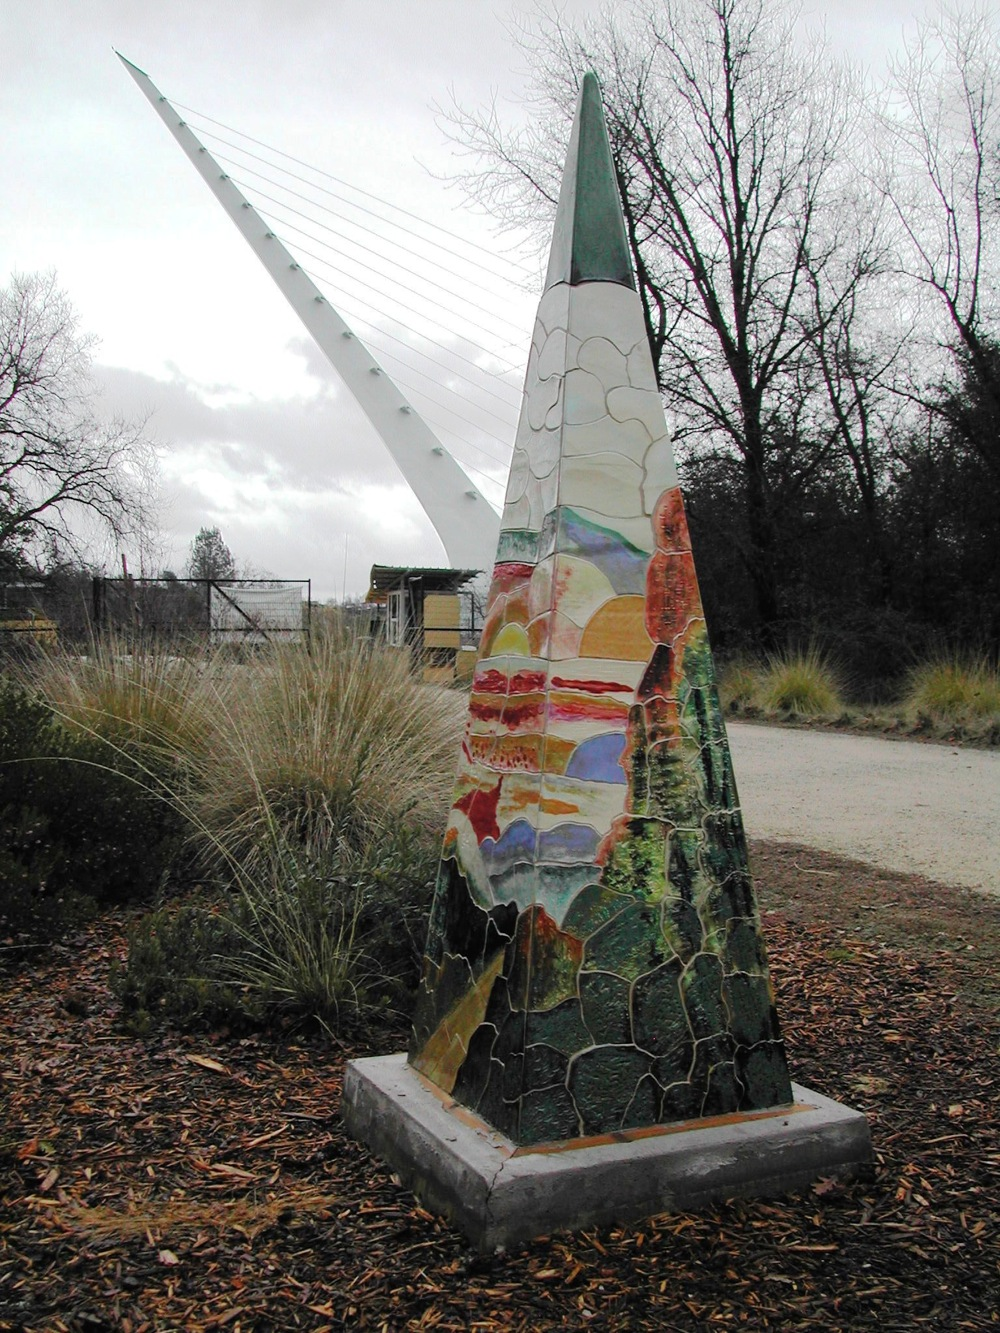 Pyramid with Sundial Bridge in background. Cross the bridge and enter McConnell Arboretum and Gardens to view these closeup.